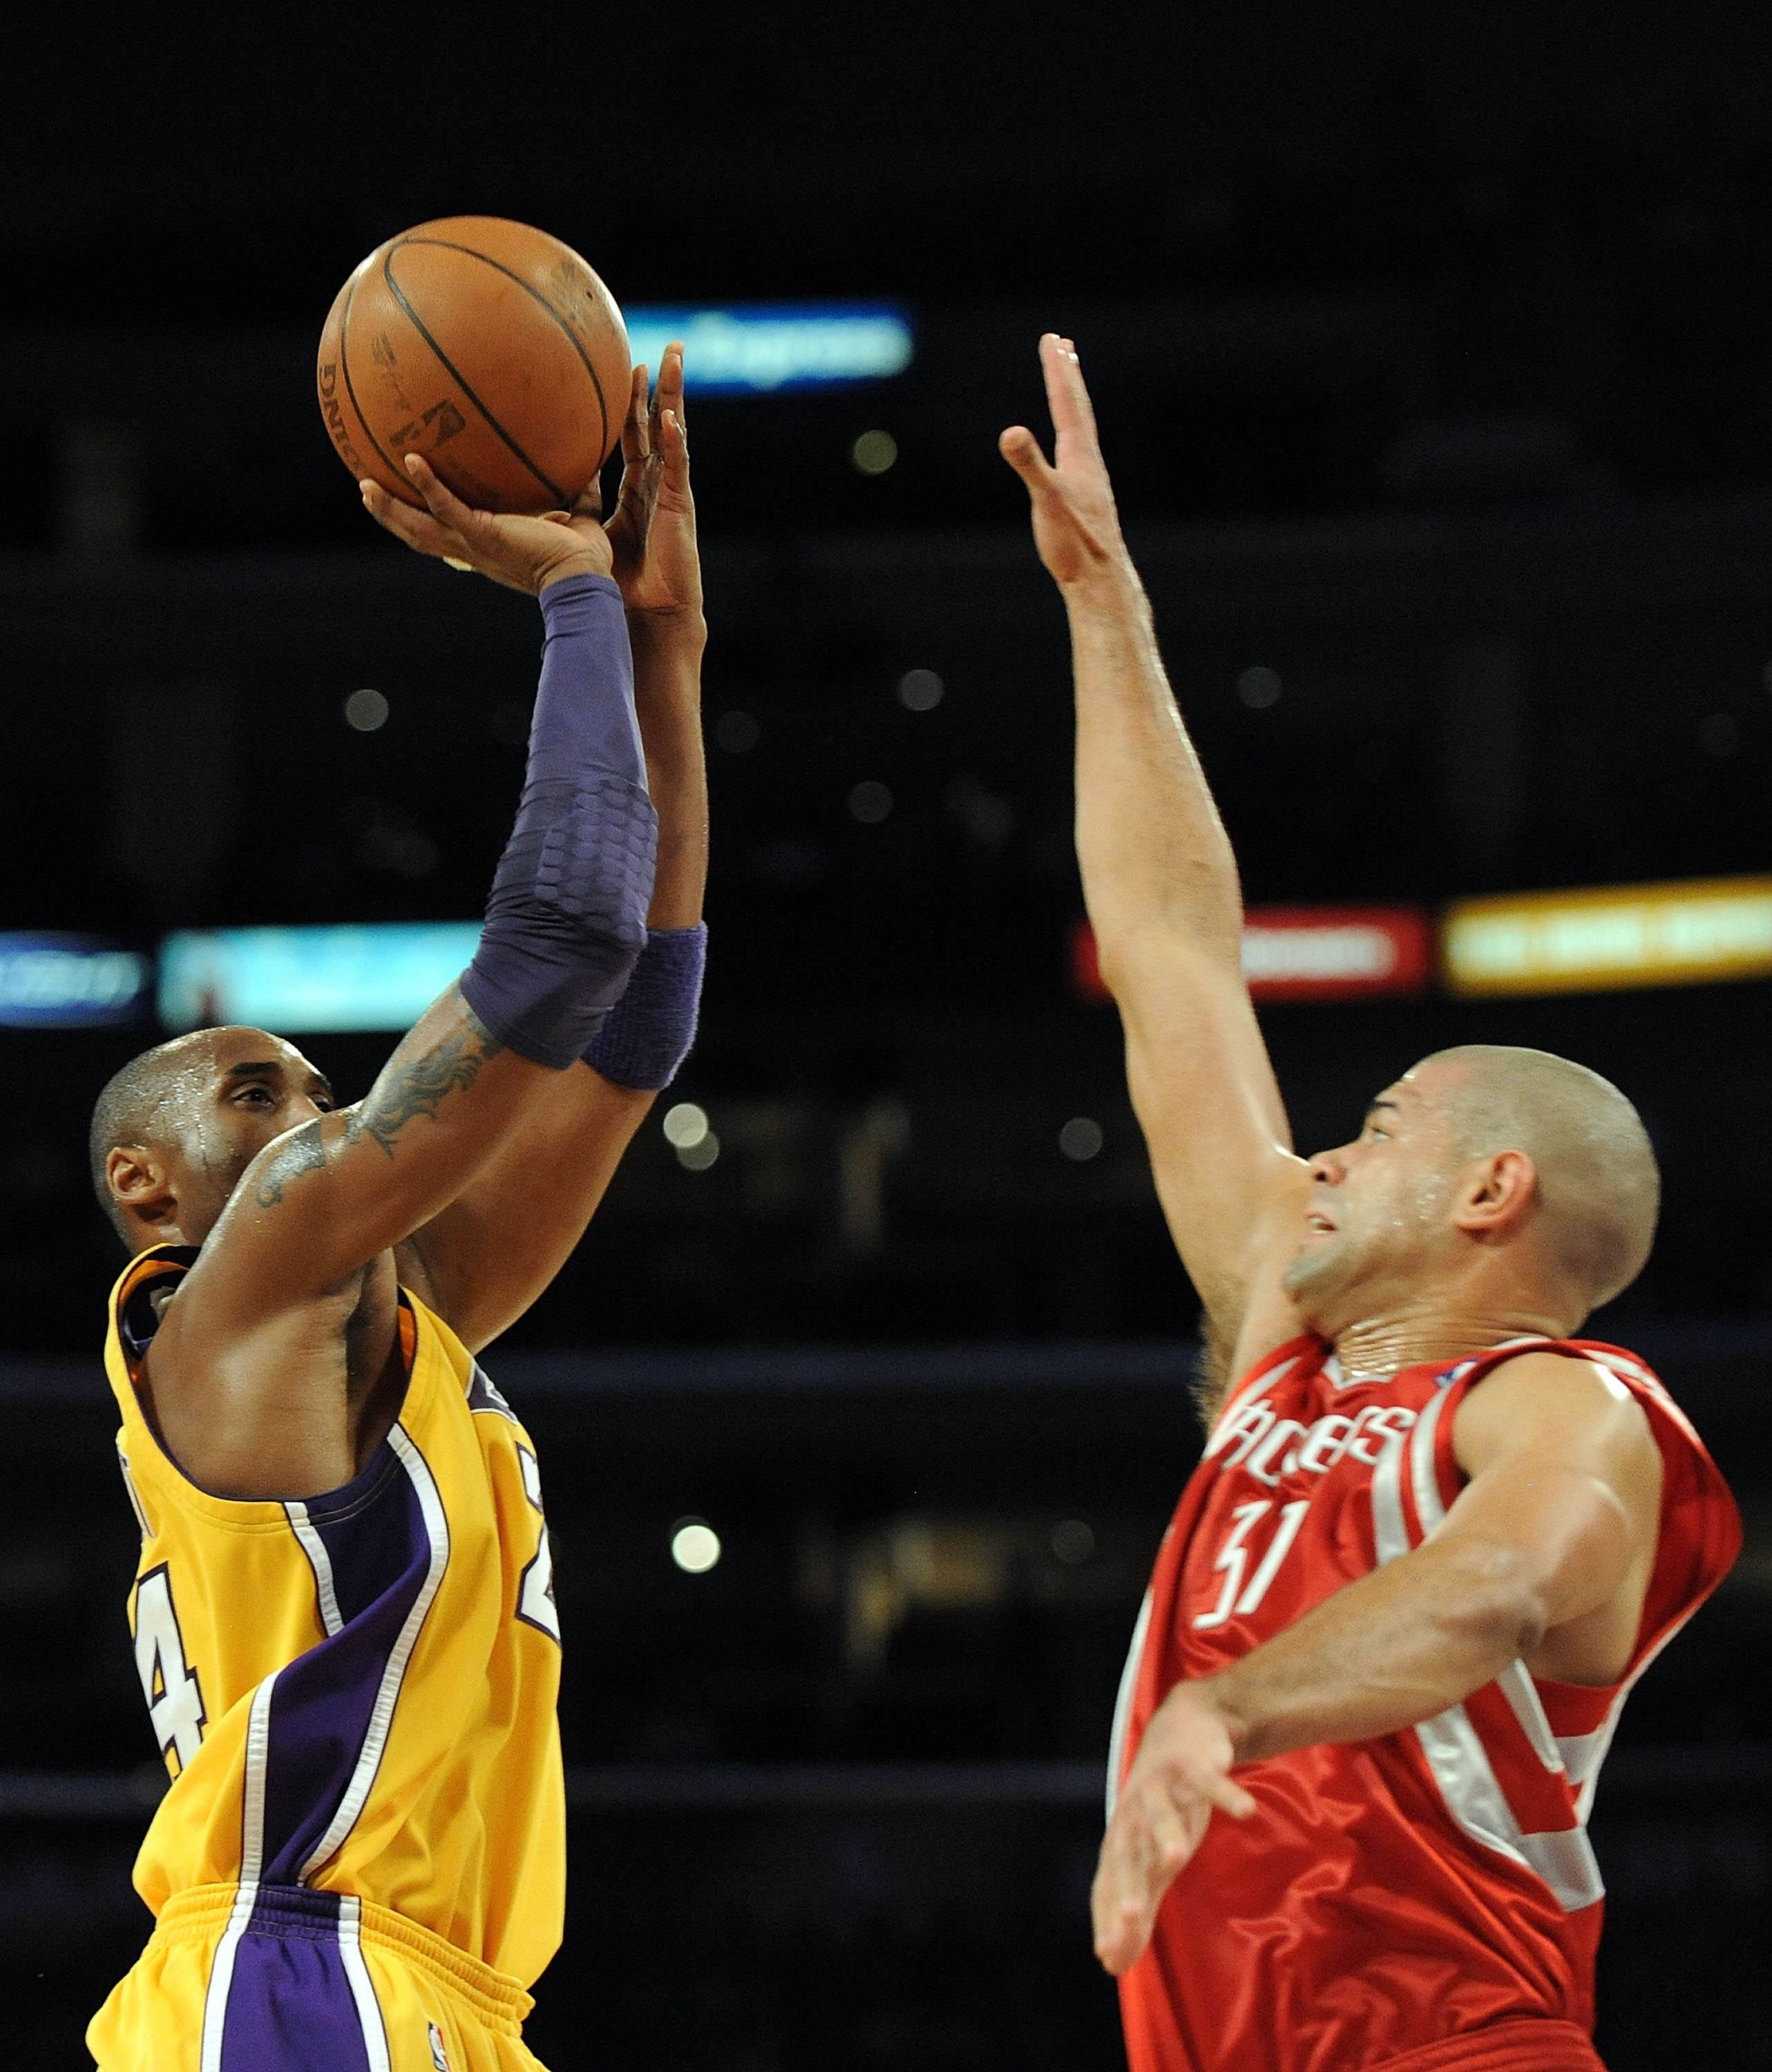 LOS ANGELES, CA - JANUARY 05:  Kobe Bryant #24 of the Los Angeles Lakers shoots in front of Shane Battier #31 of the Houston Rockets at Staples Center on January 5, 2010 in Los Angeles, California.  NOTE TO USER: User expressly acknowledges and agrees tha